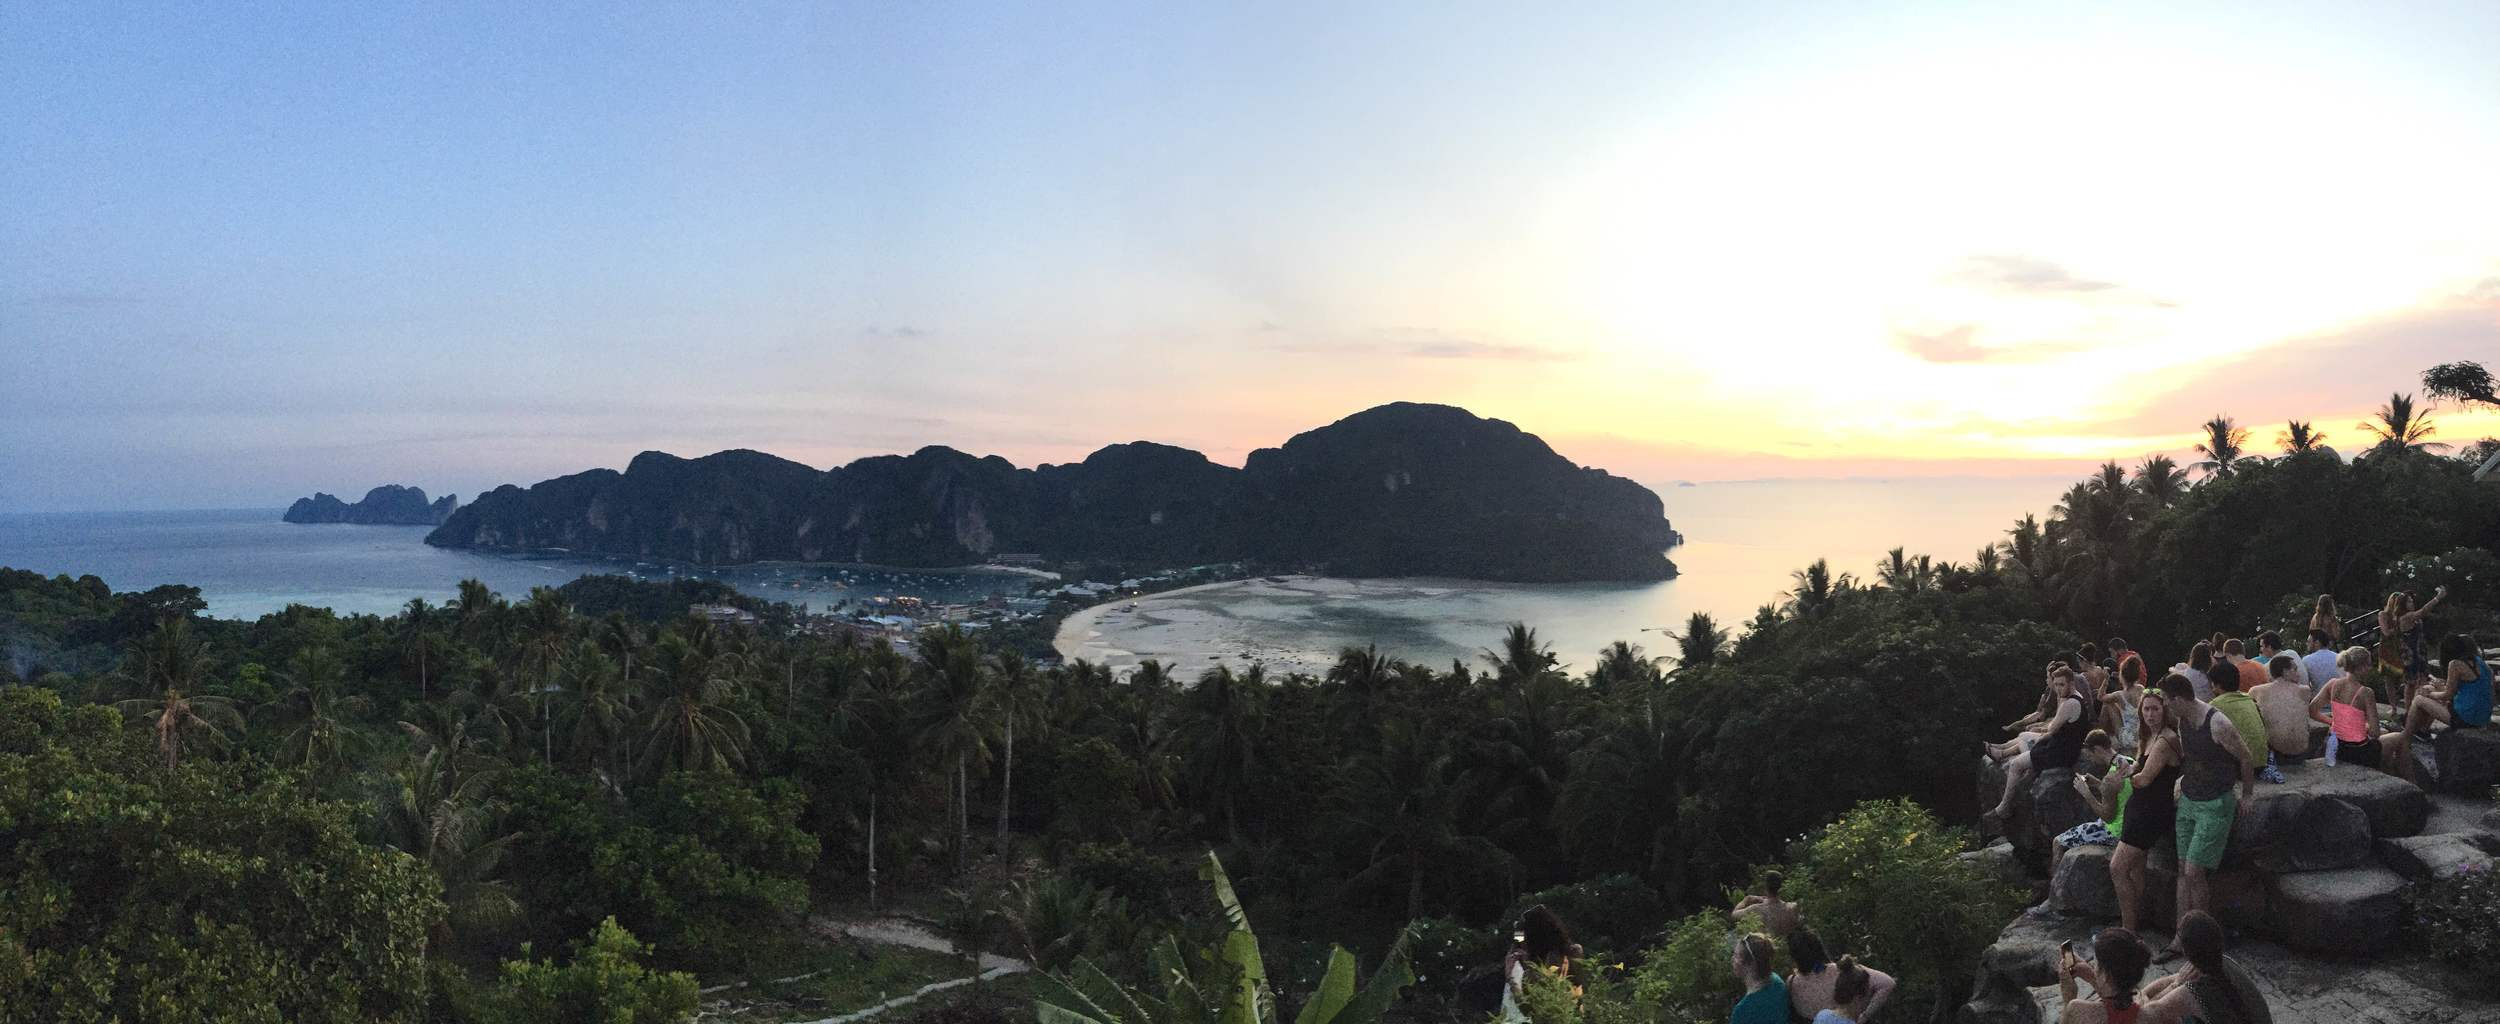 A view of Ko Phi Phi Island from the highest viewpoint.